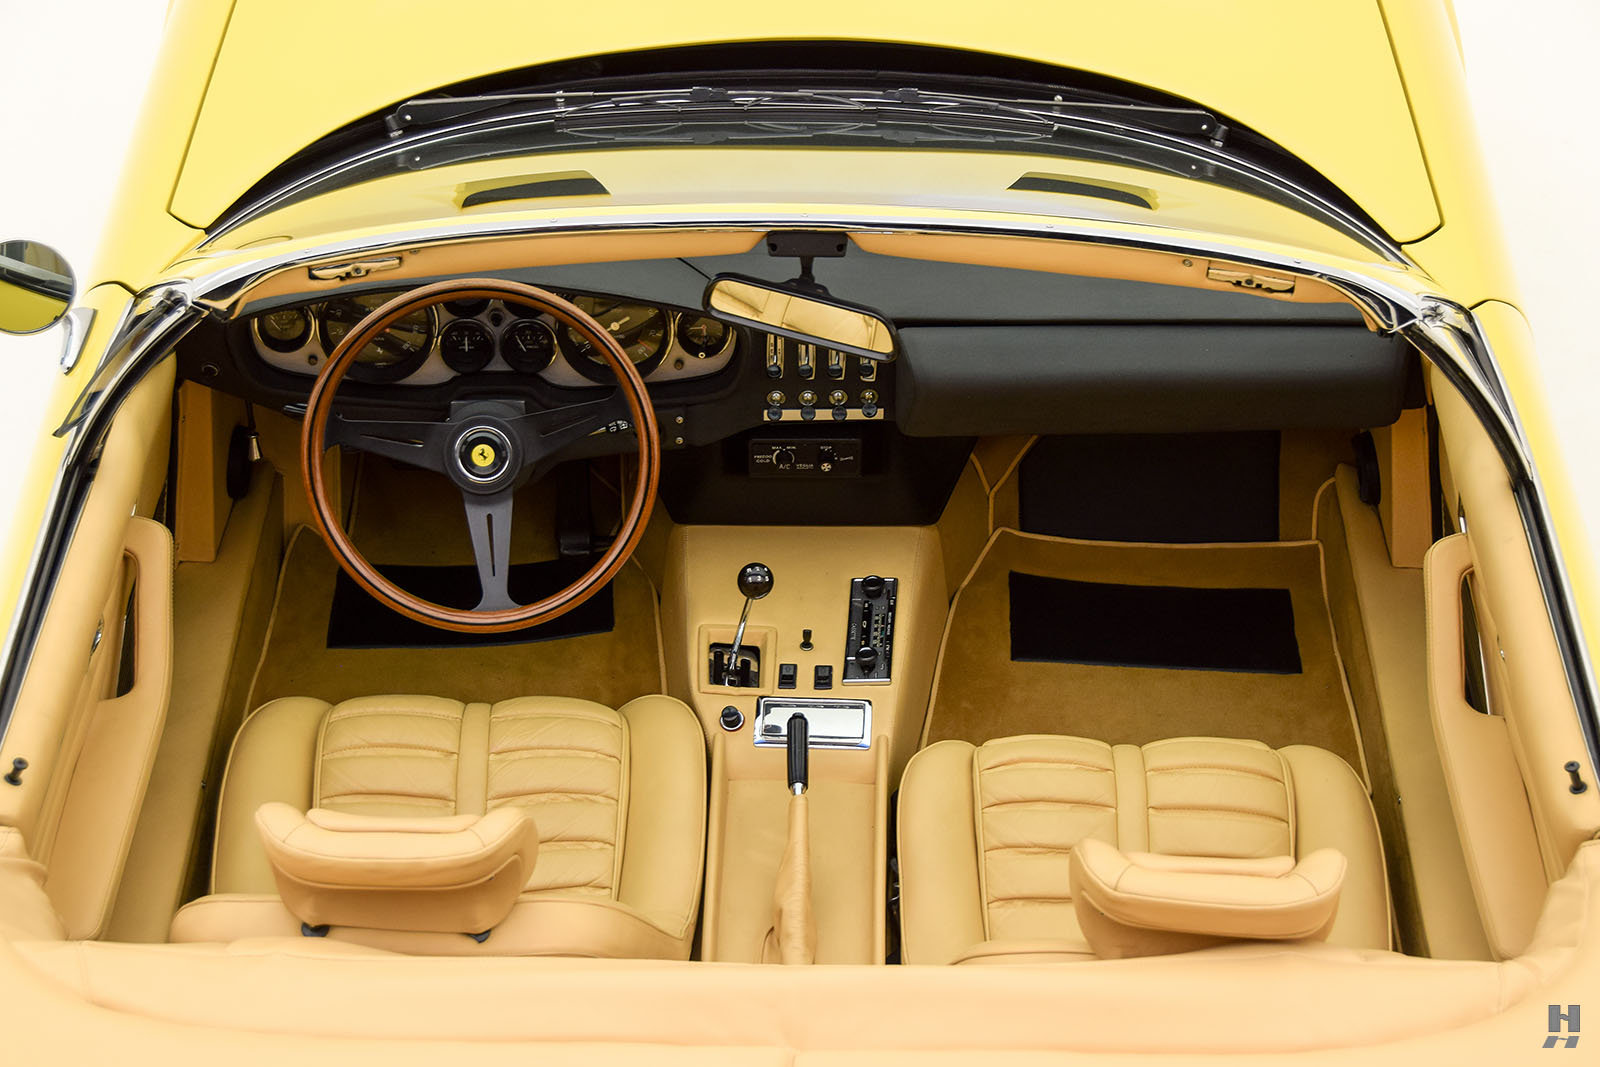 Ferrari 365 GTB/4 Daytona Spider-Conversion - 1971 For Sale (picture 4 of 6)